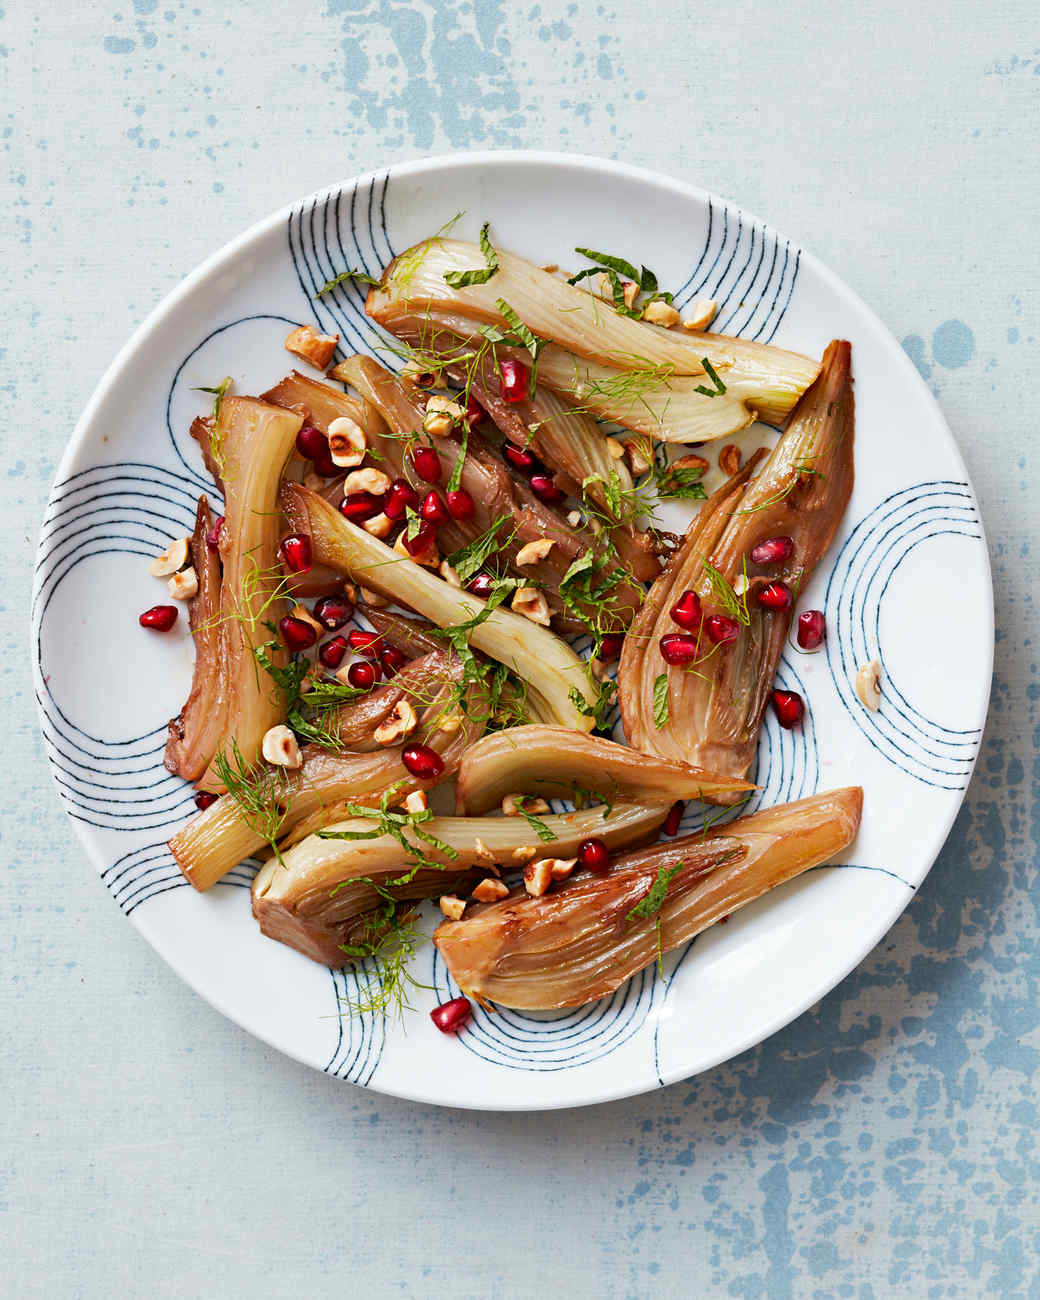 braised-fennel-with-pomegranate-0279774.jpg